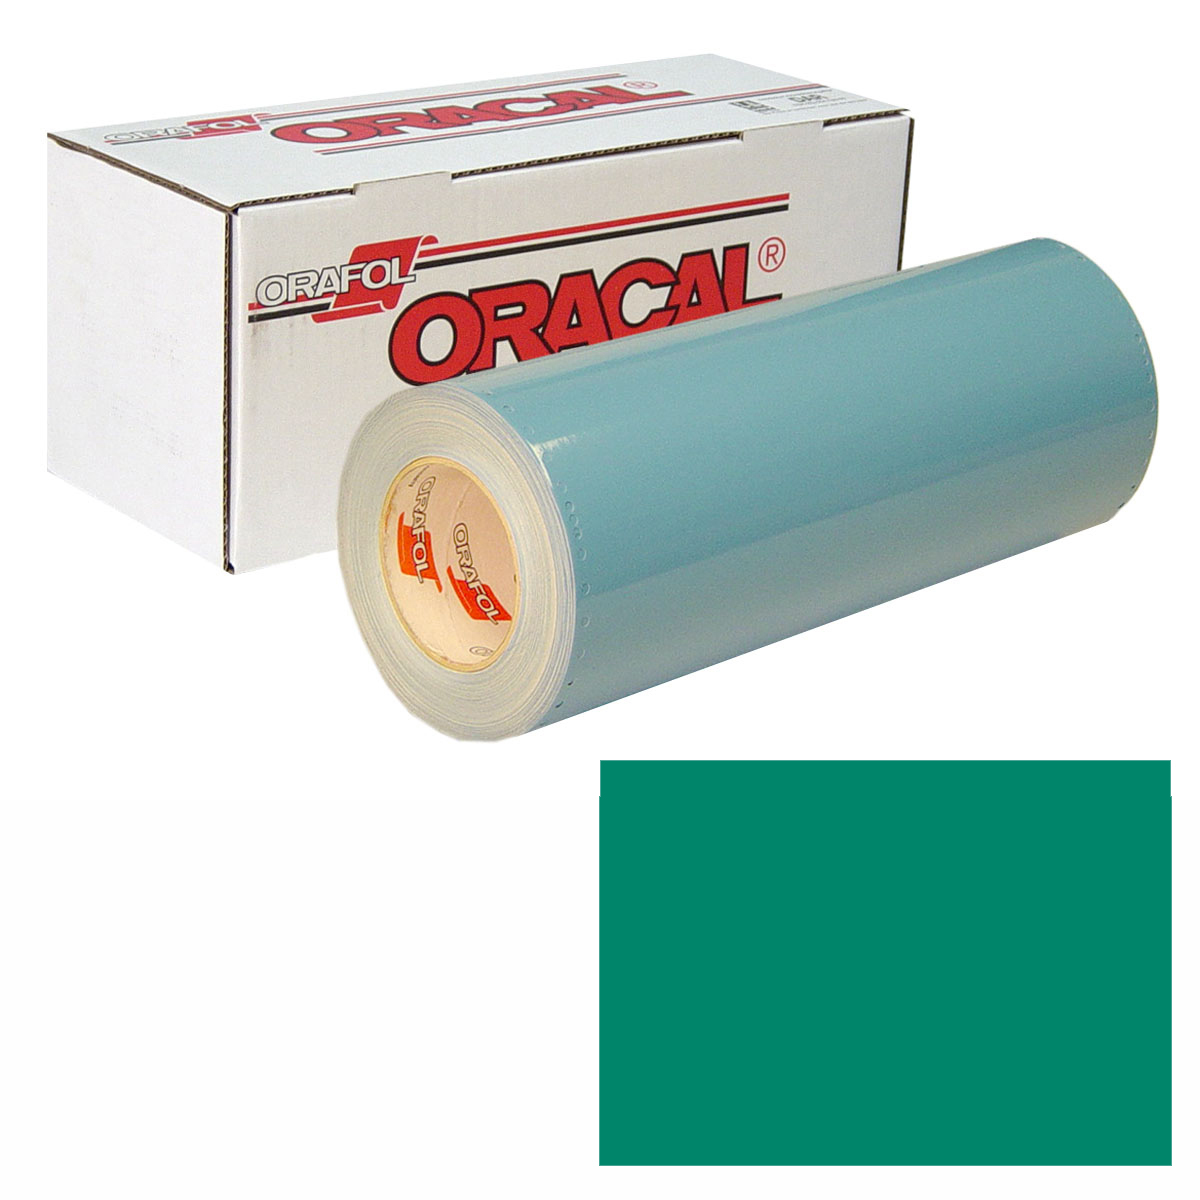 ORACAL 751 30In X 10Yd 607 Turquoise Green